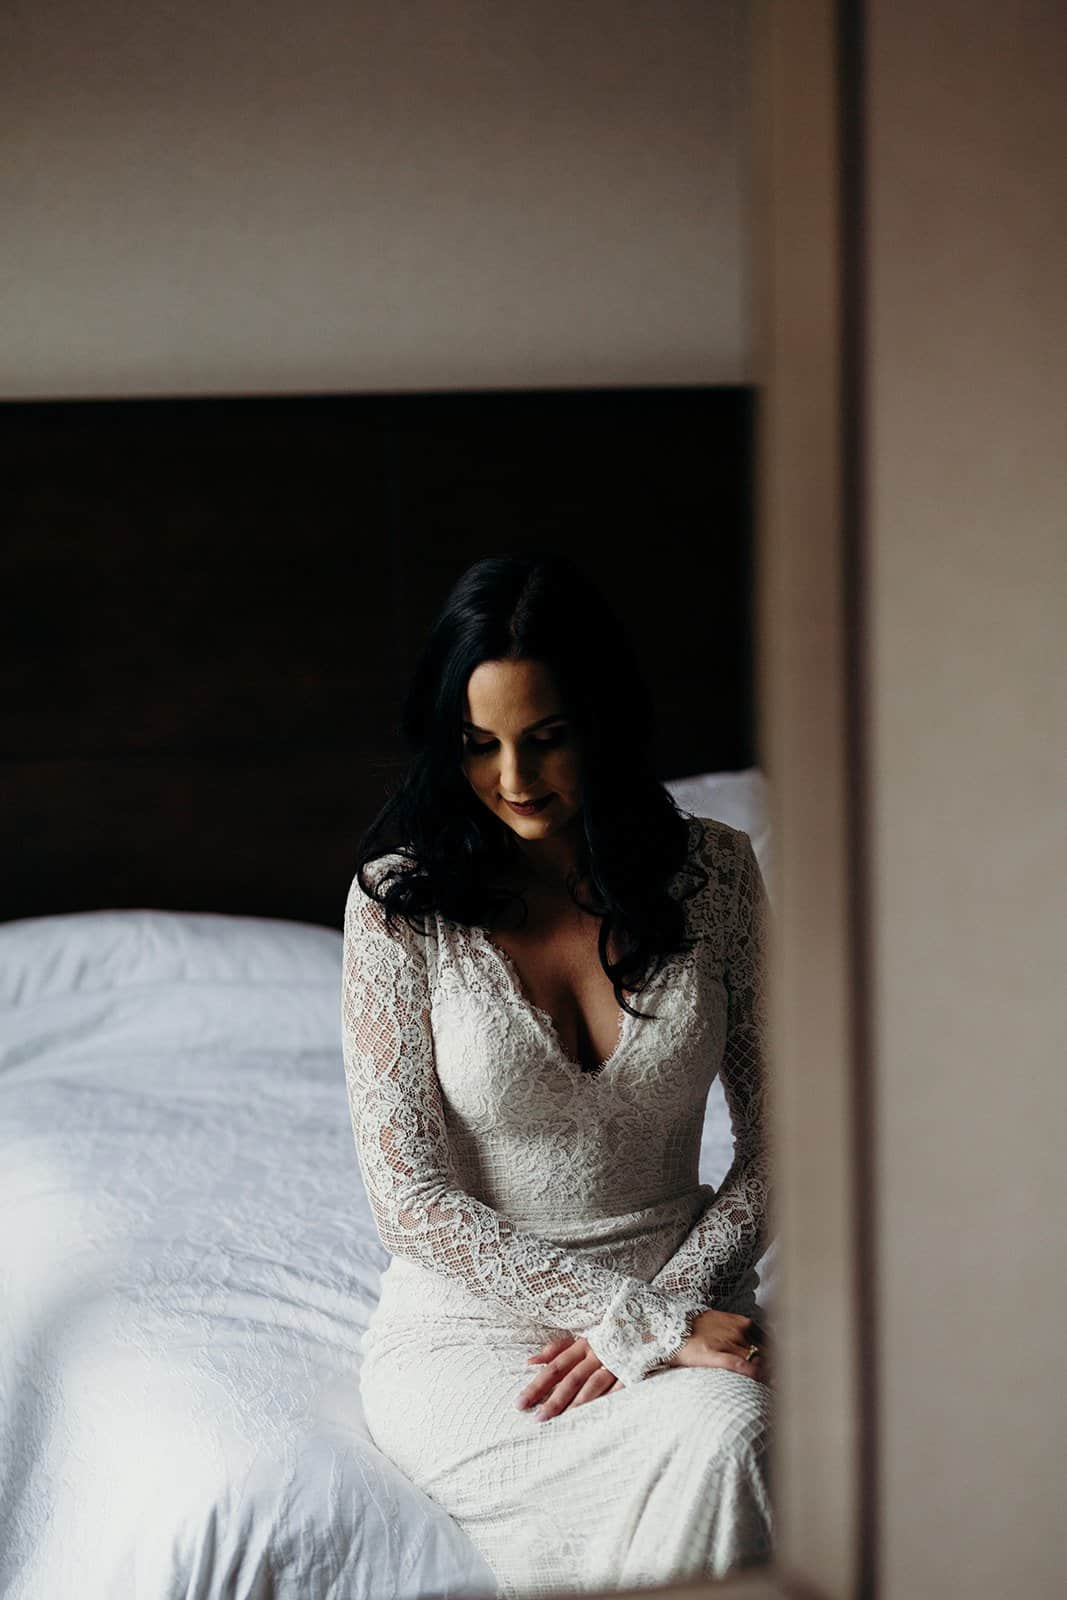 Bride waits on bed after getting ready for wedding